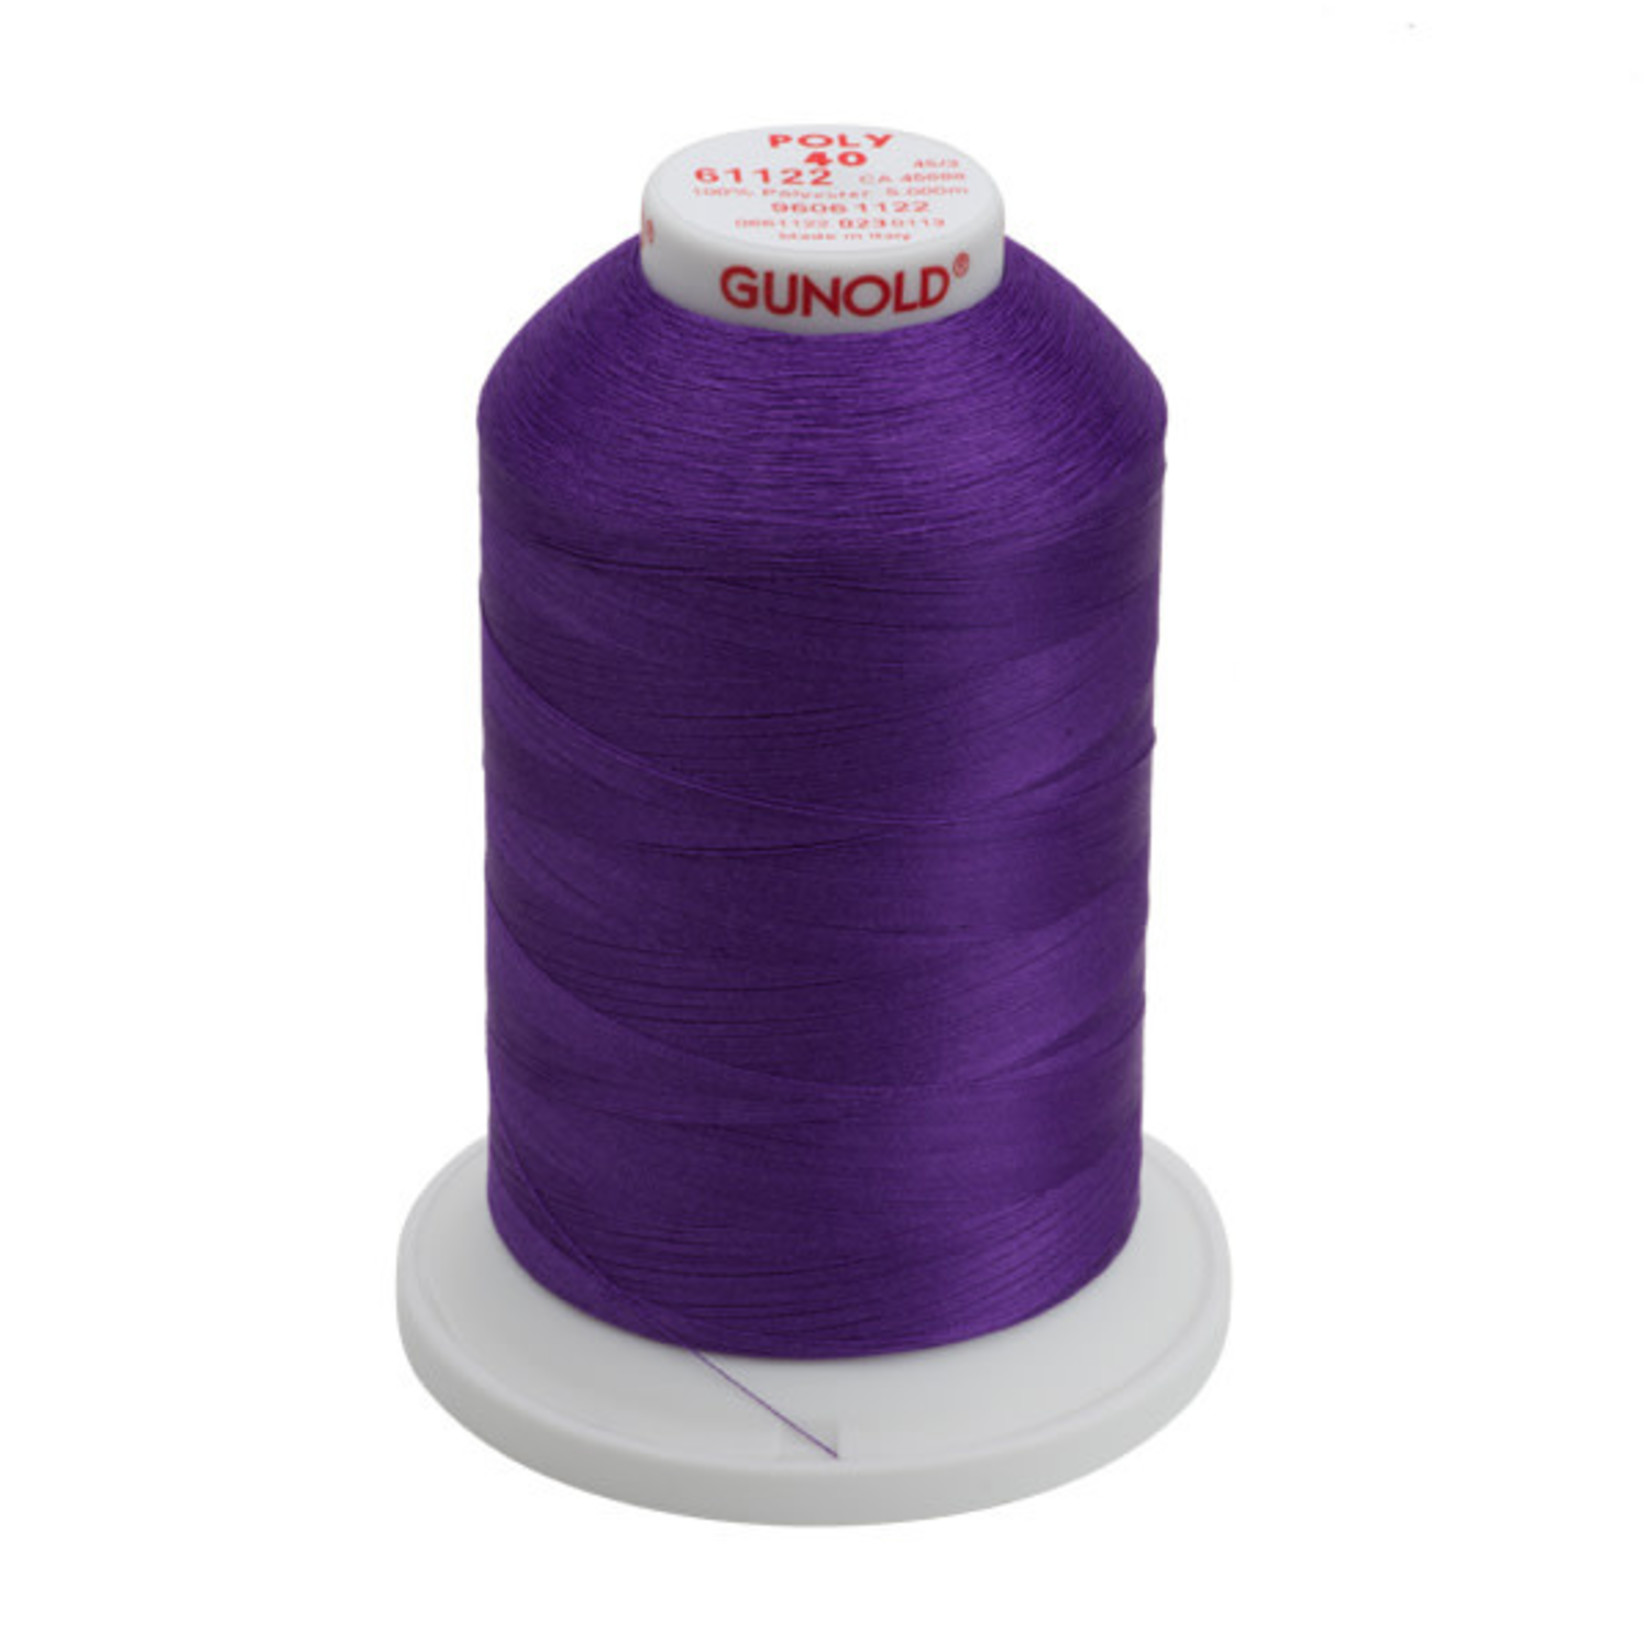 Gunold Poly 40 WT 61122 Purple 1000m